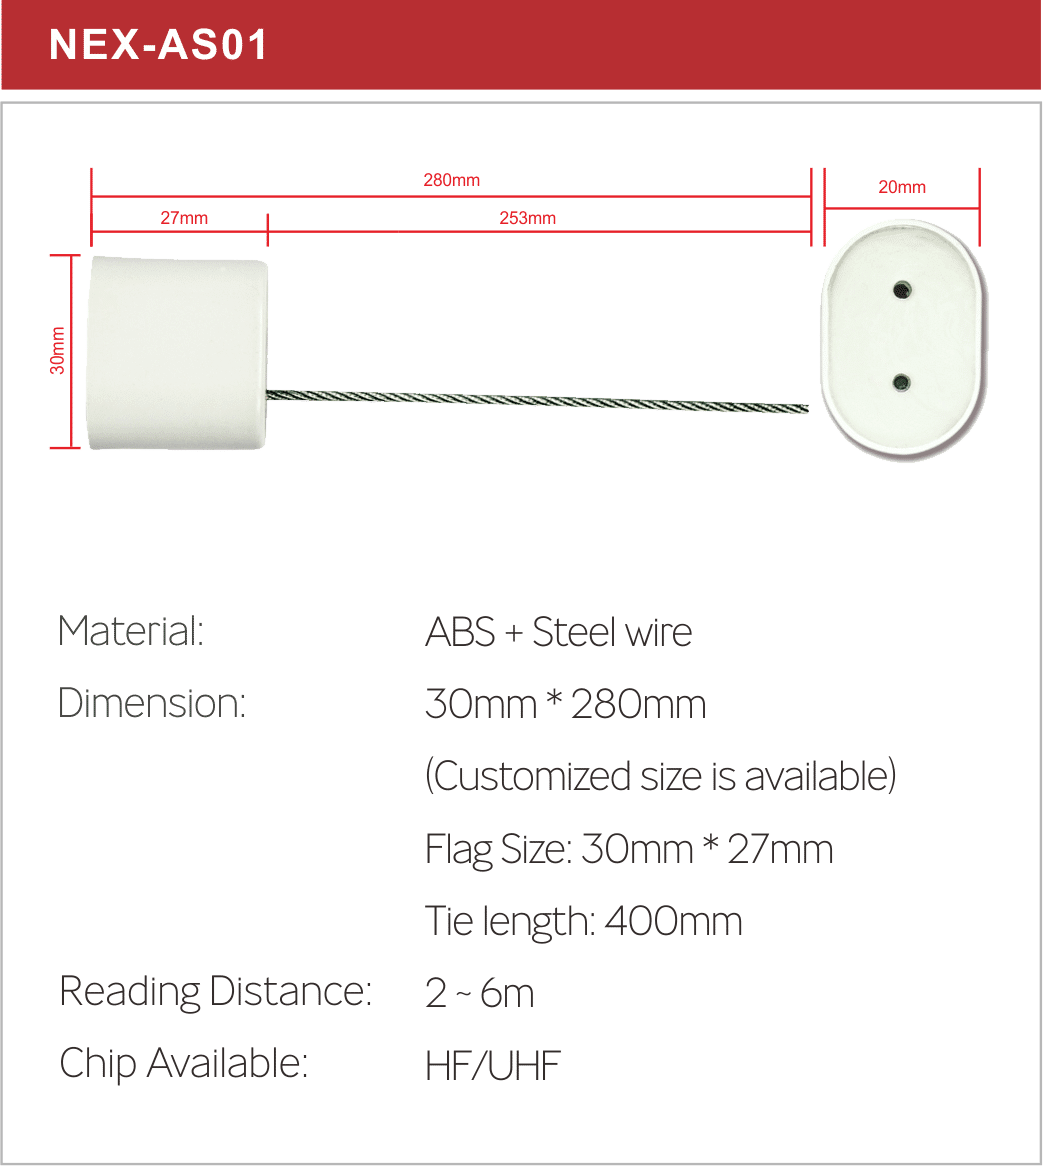 RFID cable tag spec for NEX-AS01